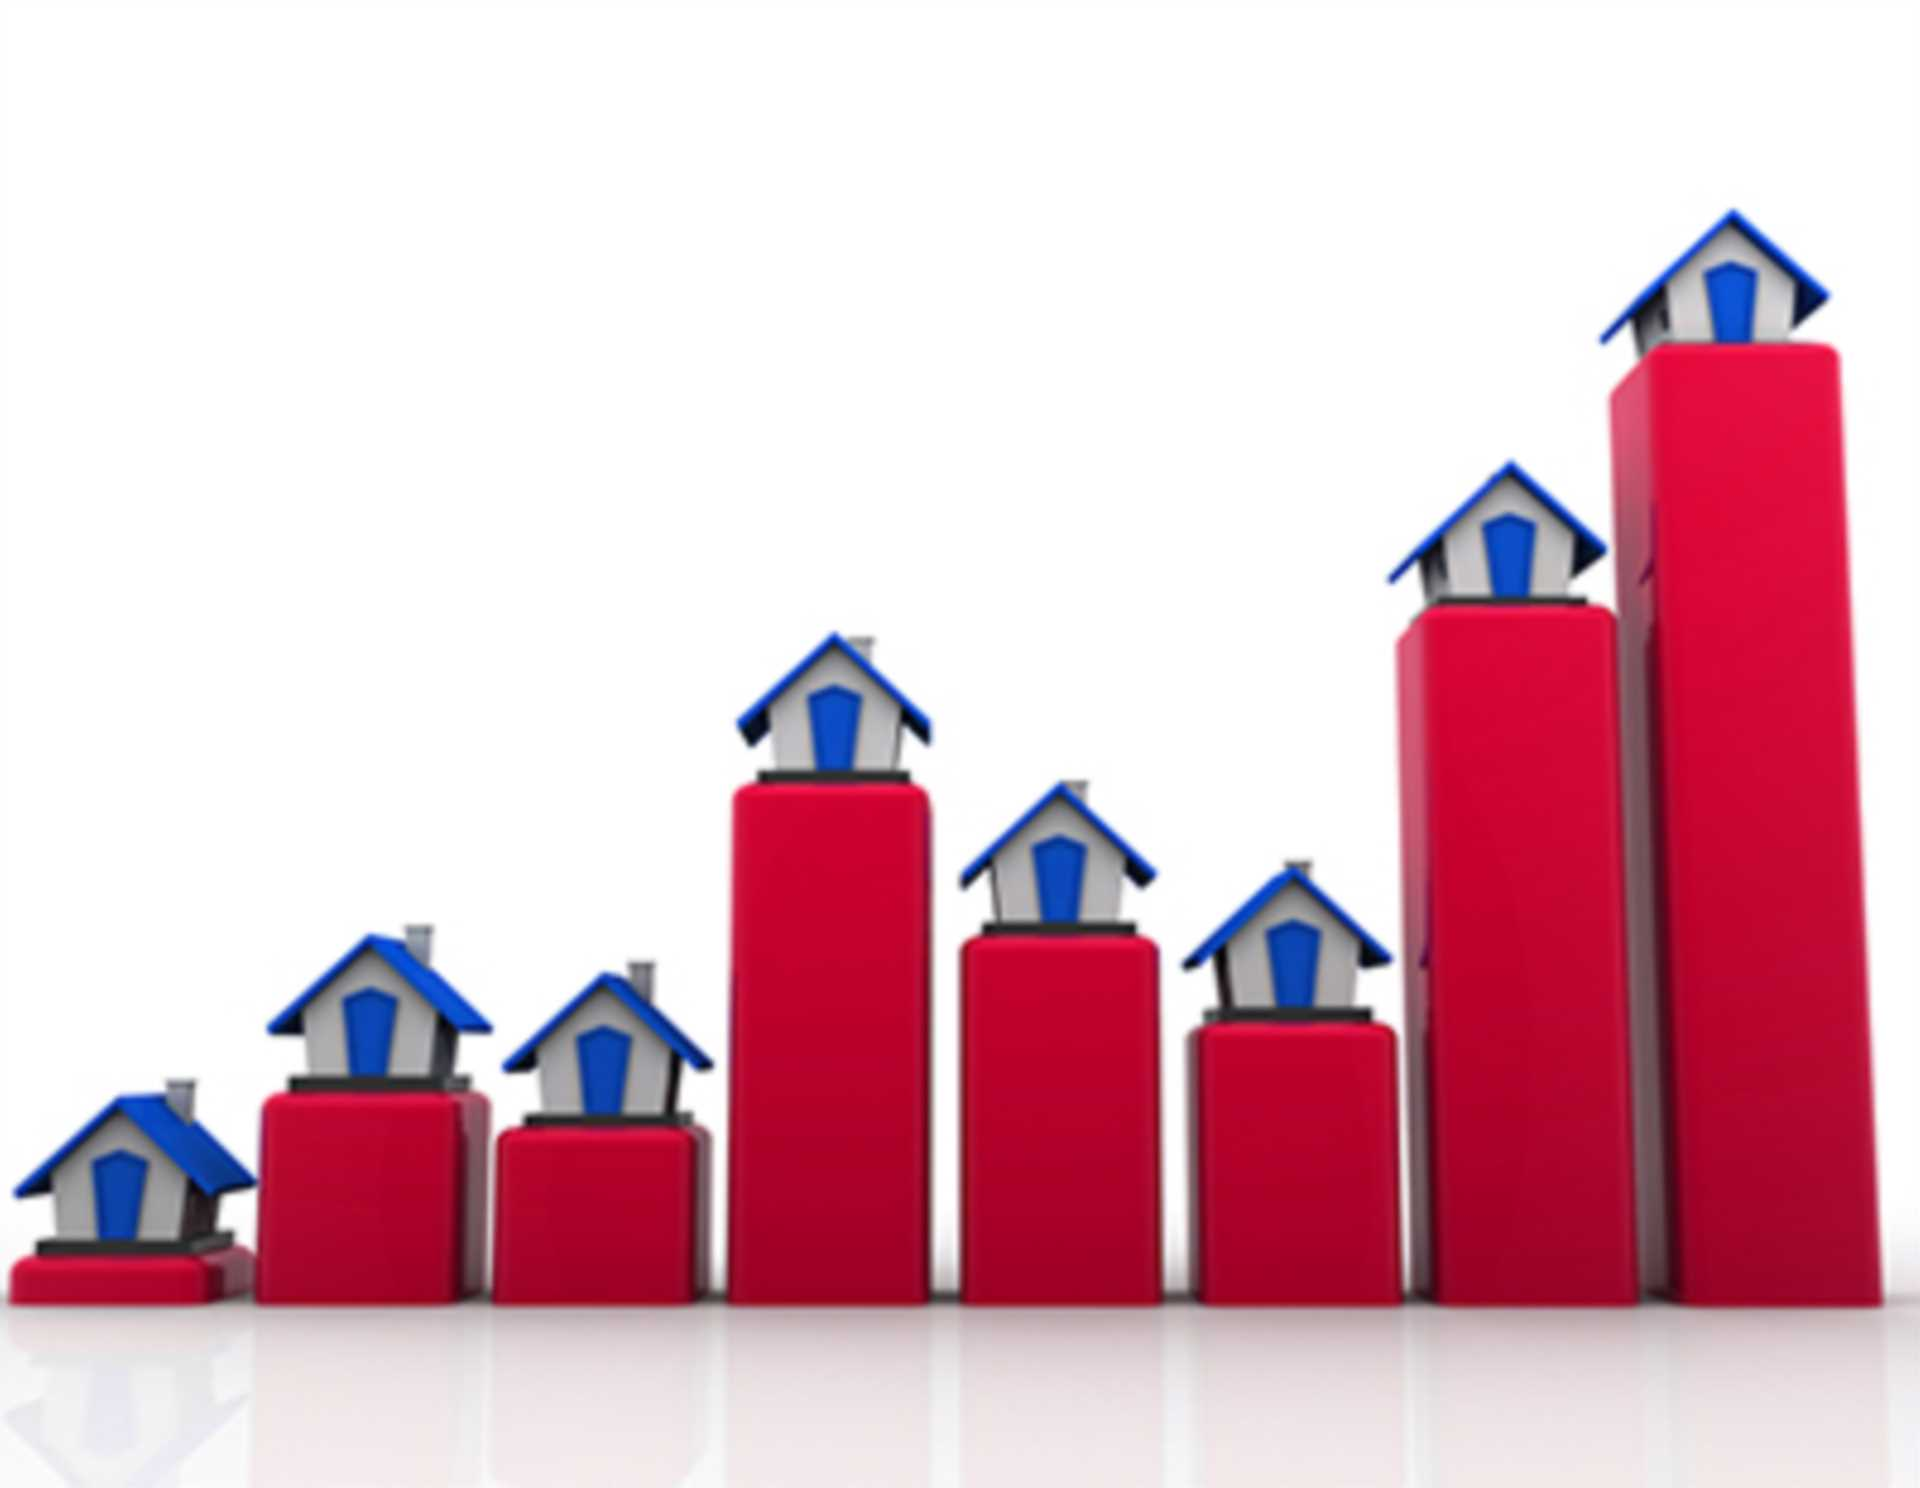 Capital appreciation on housing far outstrips other property types